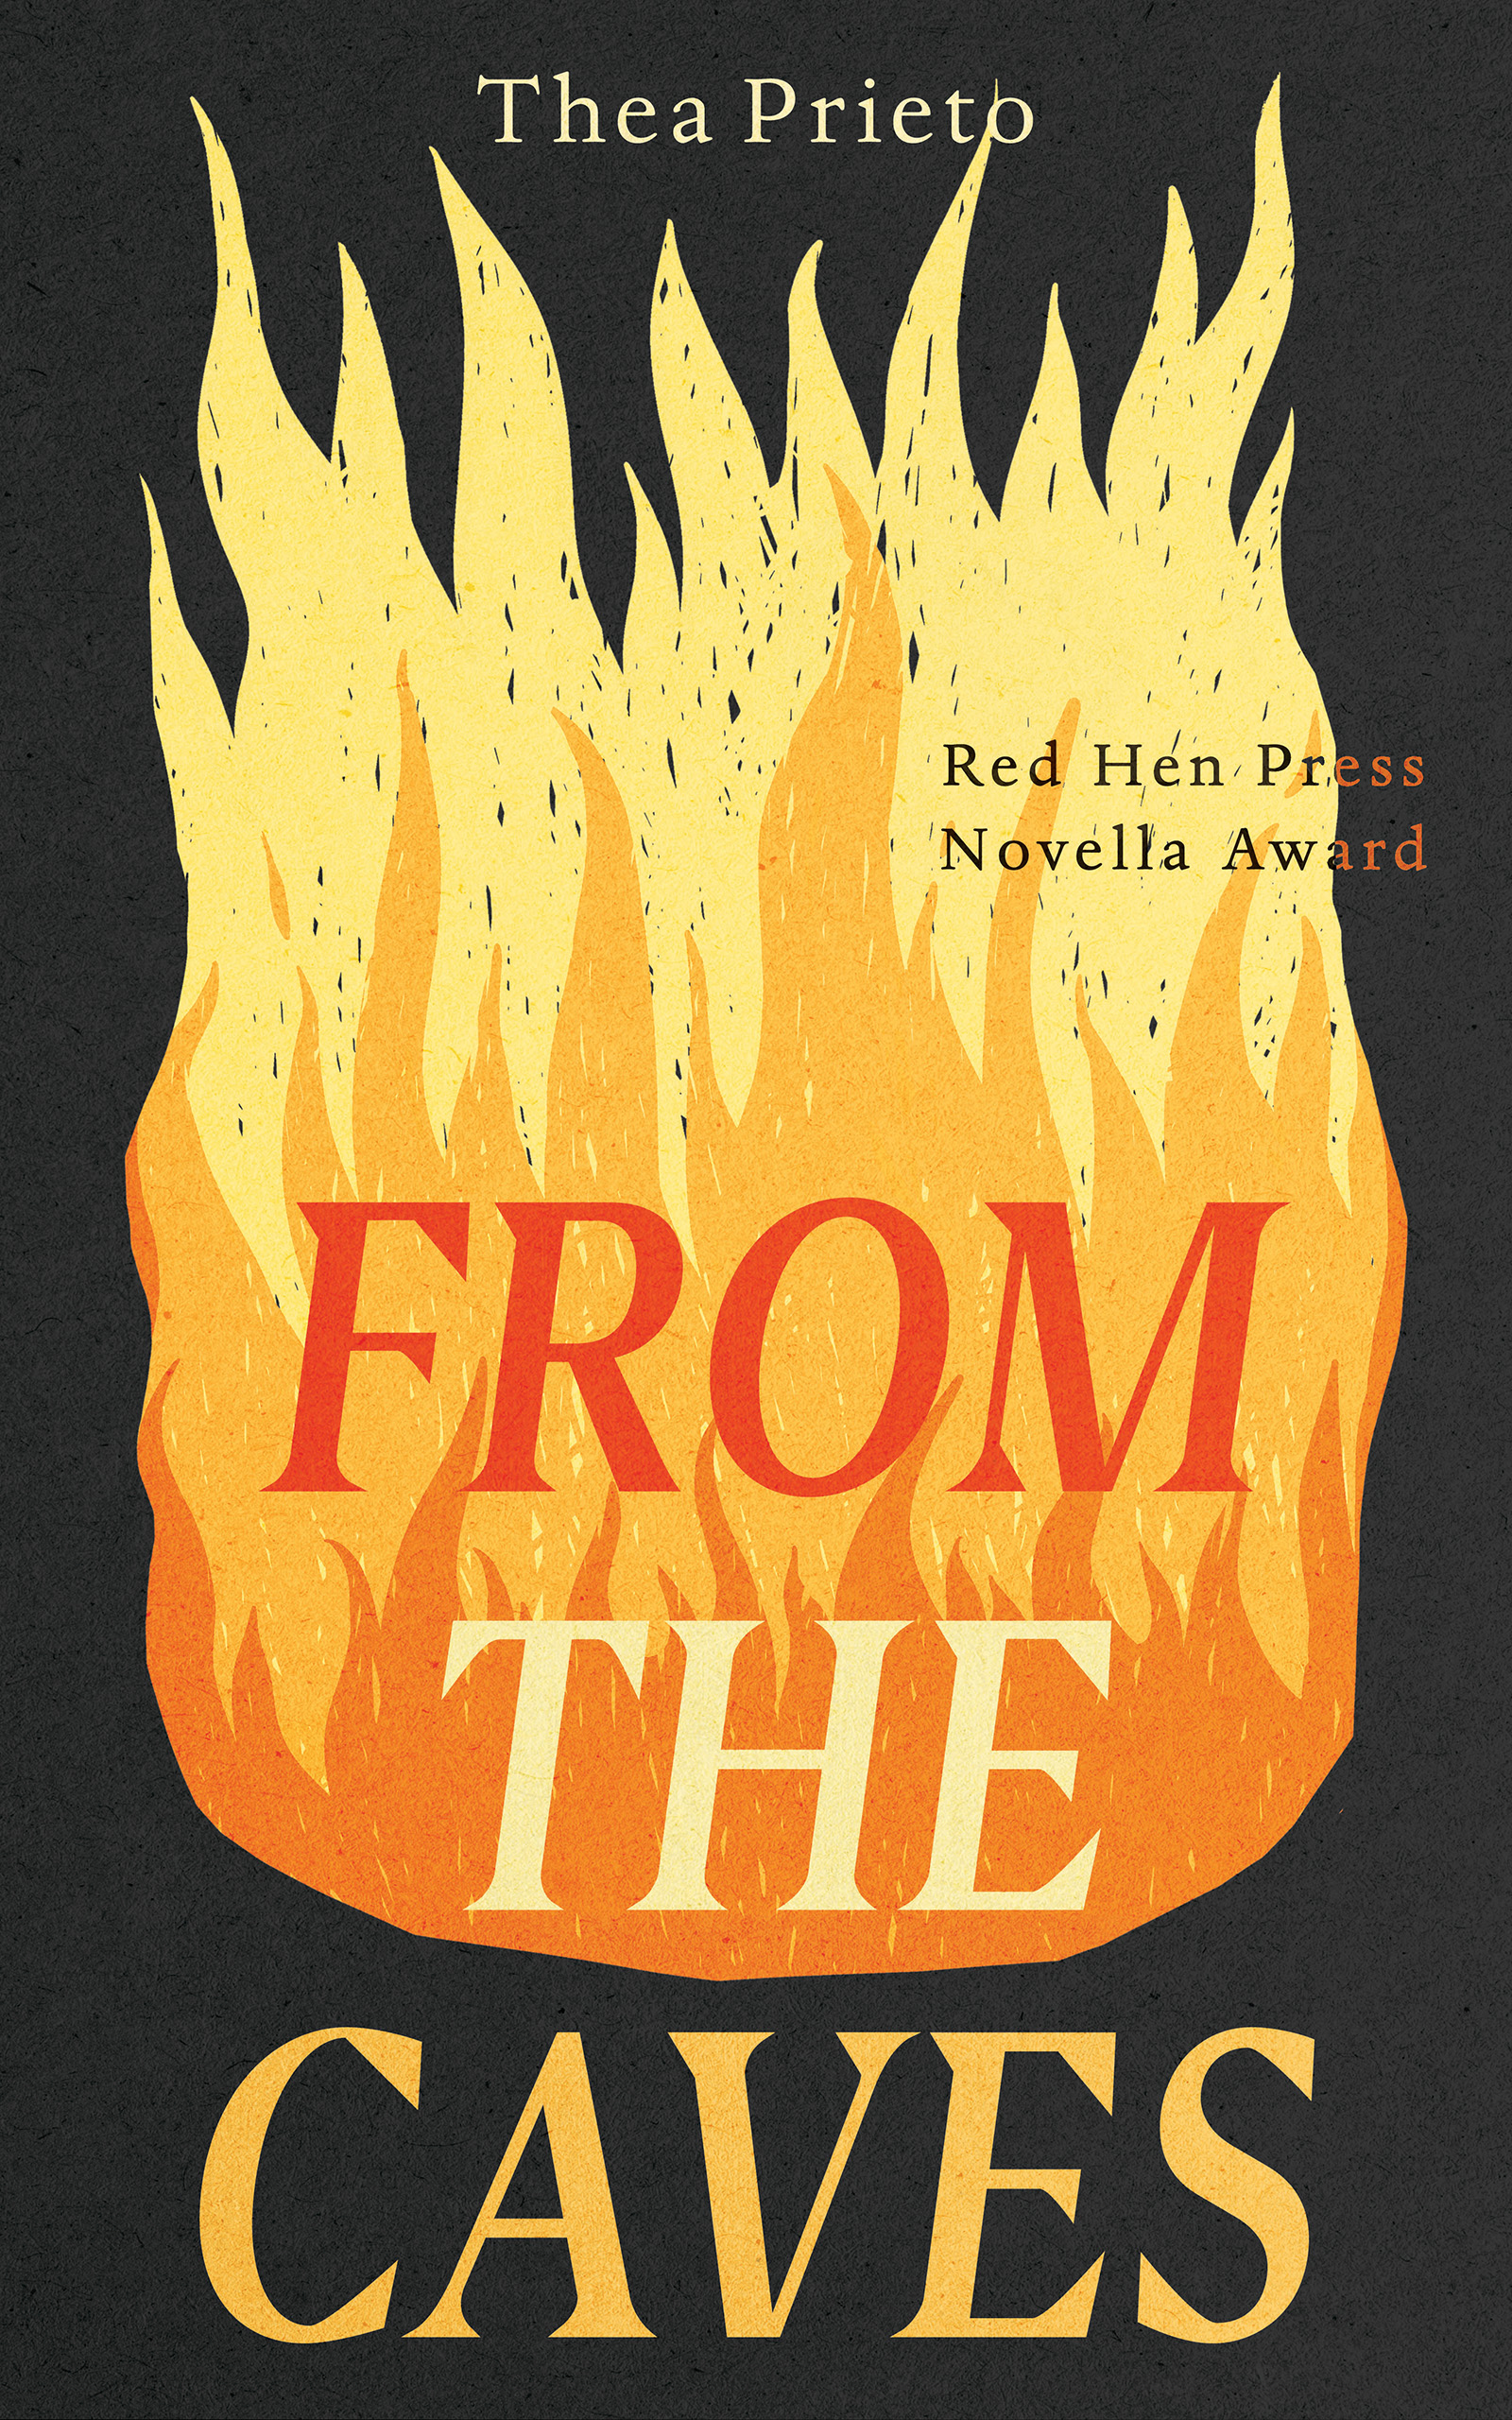 A graphic design of a large fire at the center with red and yellow script on top that reads From the Caves by Thea Prieto.